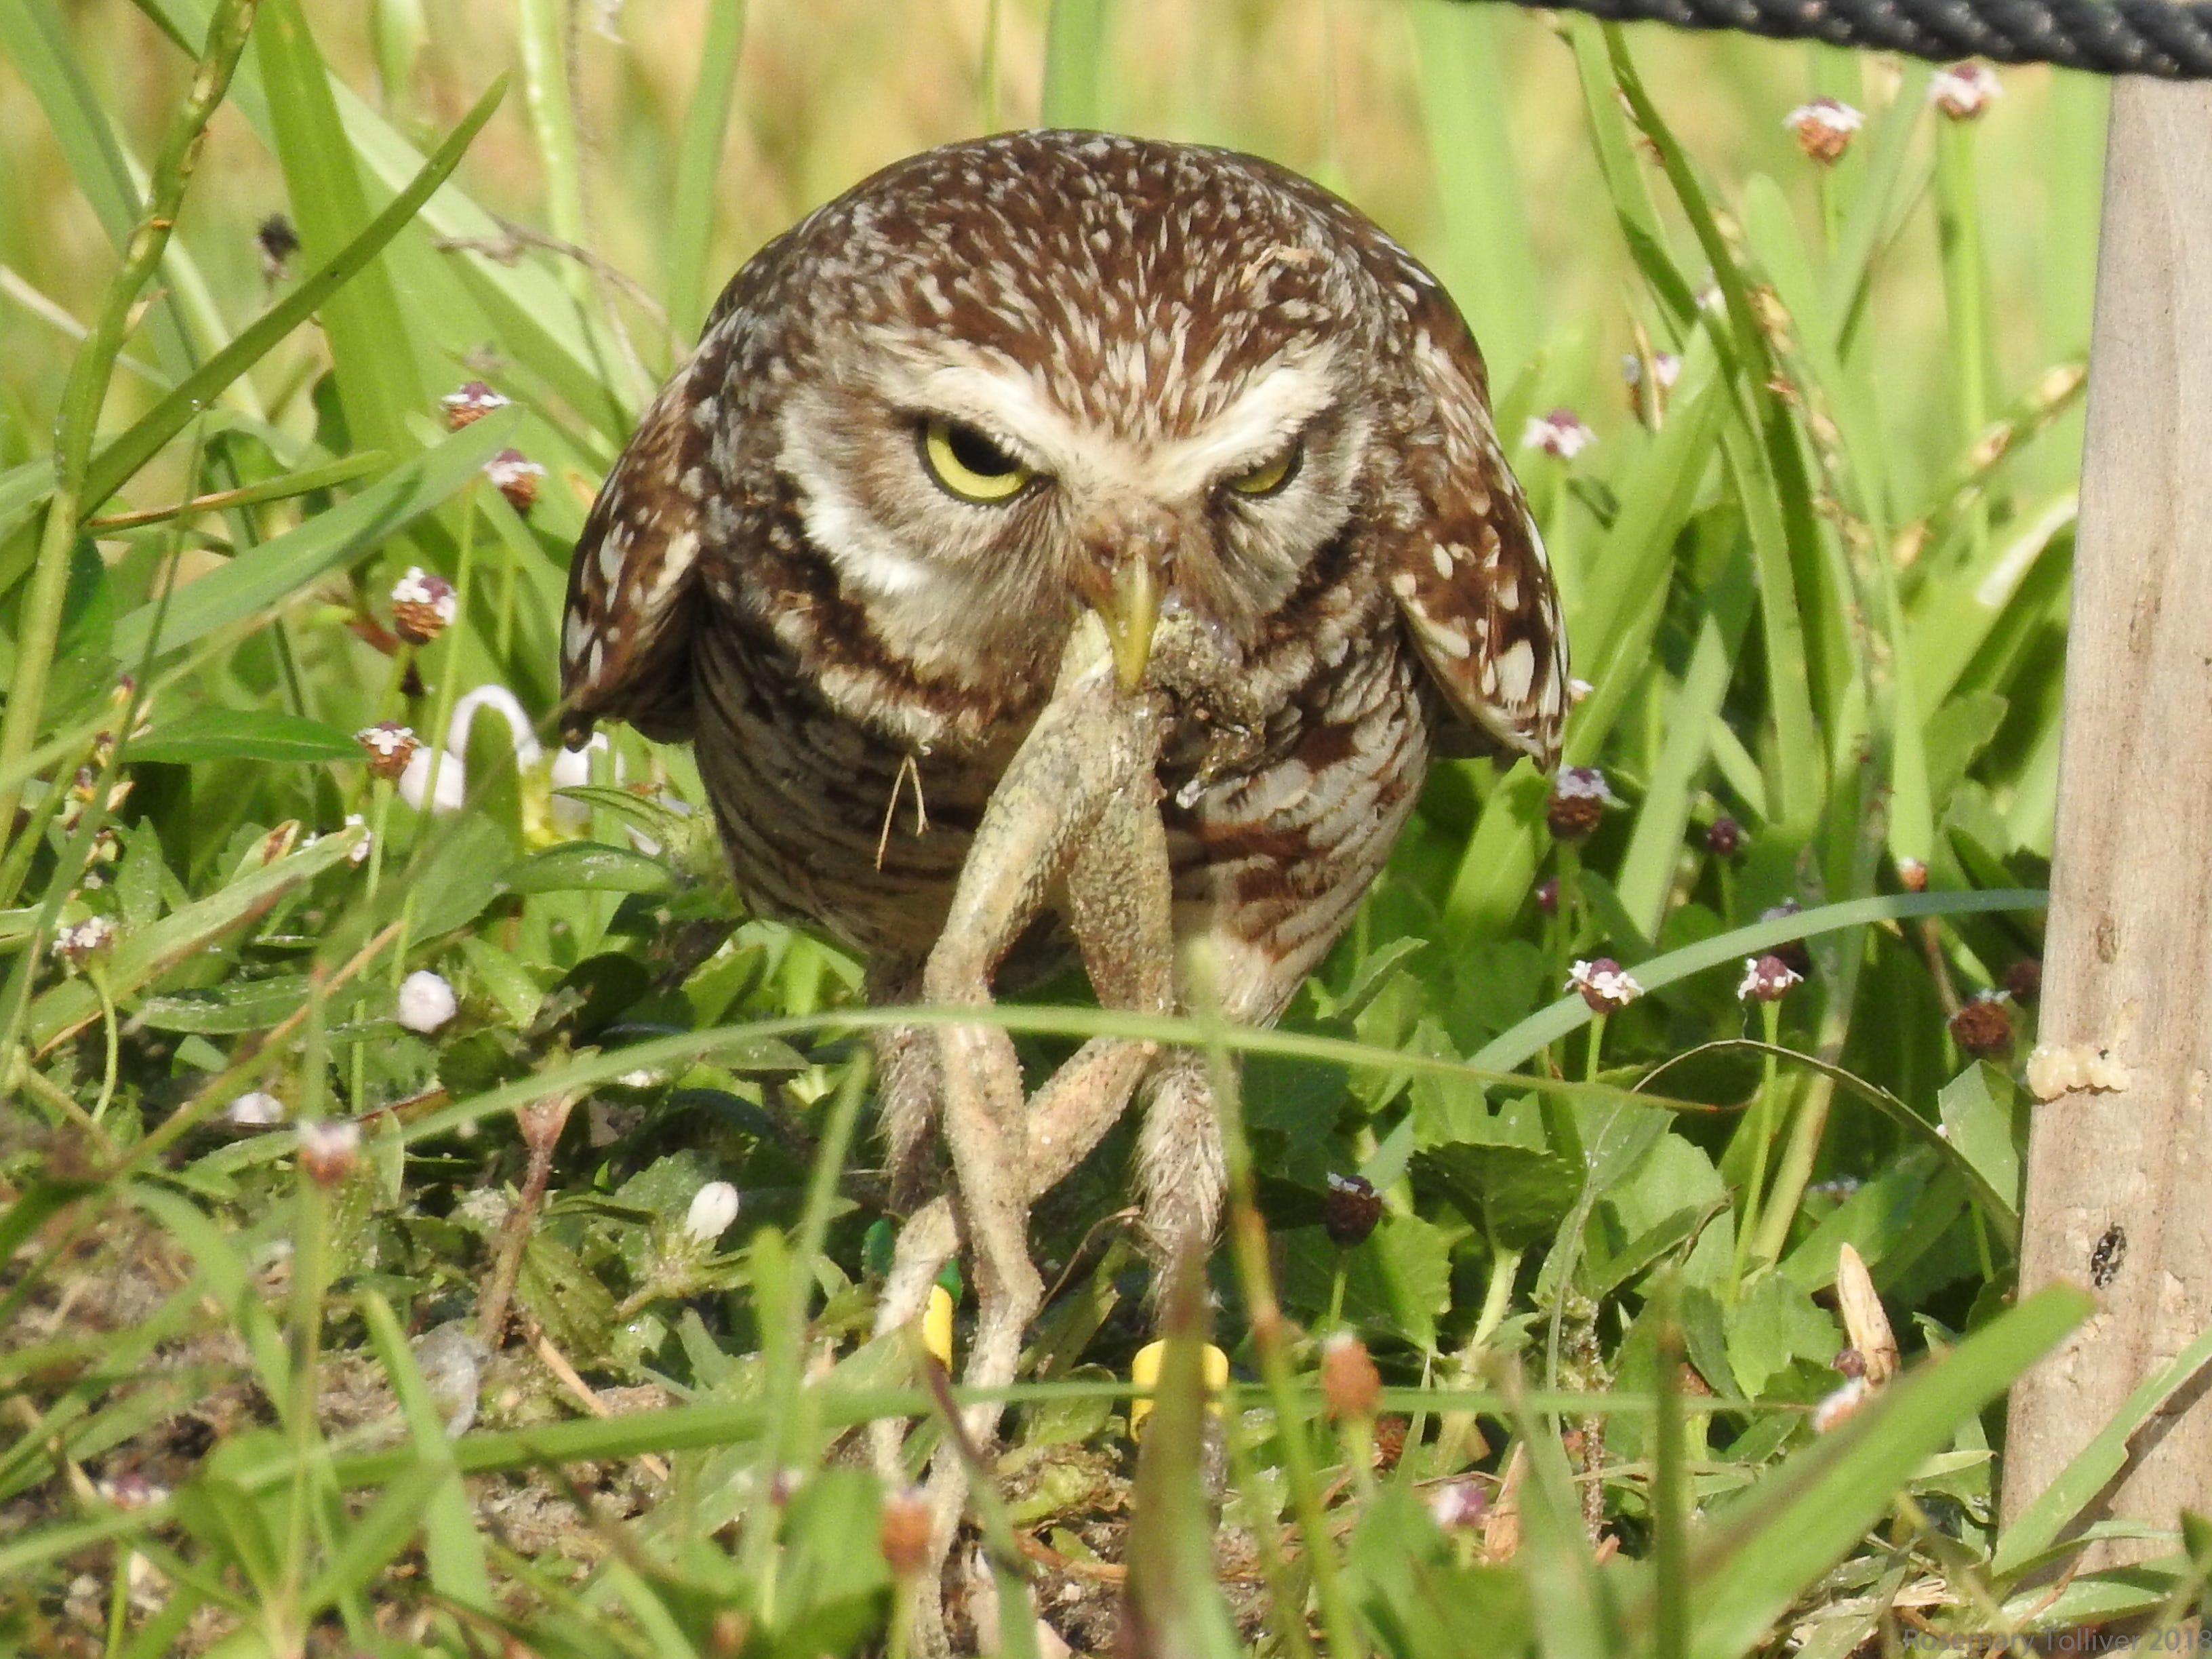 Rosemary Tolliver, of Marco Island, took this photo of an owl enjoying frog's legs.